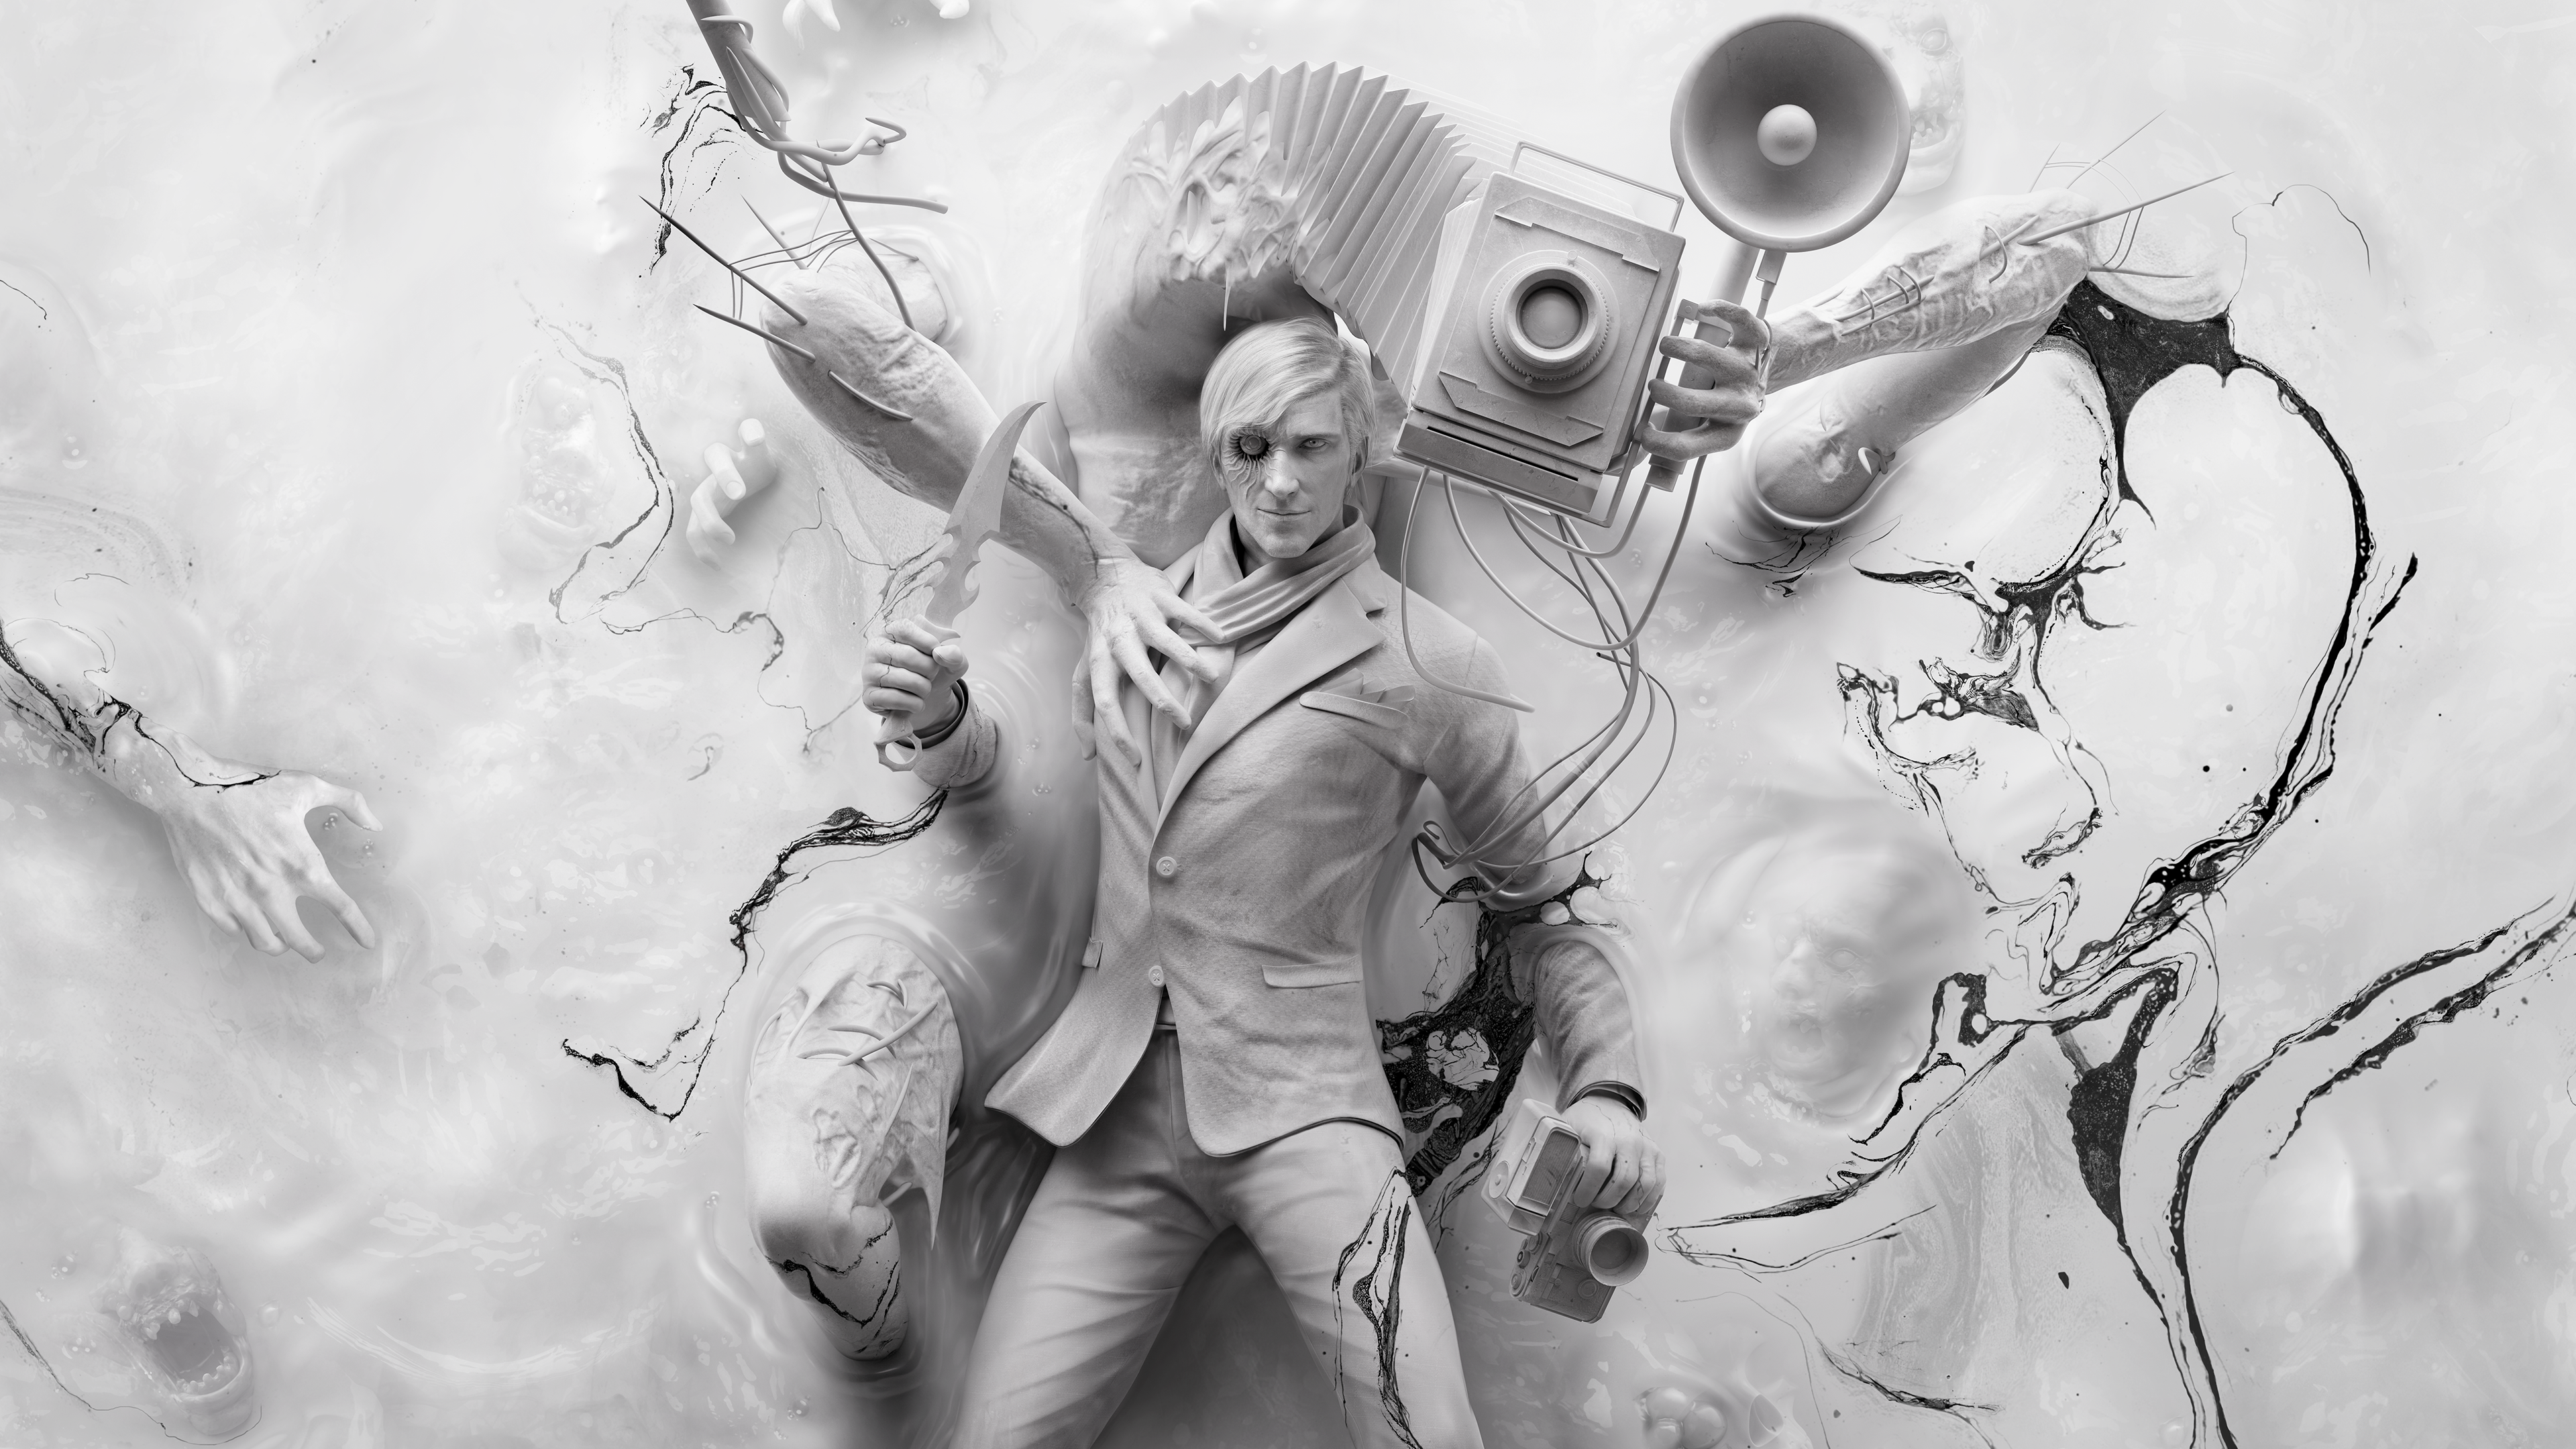 Wallpaper Theodore Harbinger The Evil Within 2 Hd: Stefano And Obscura